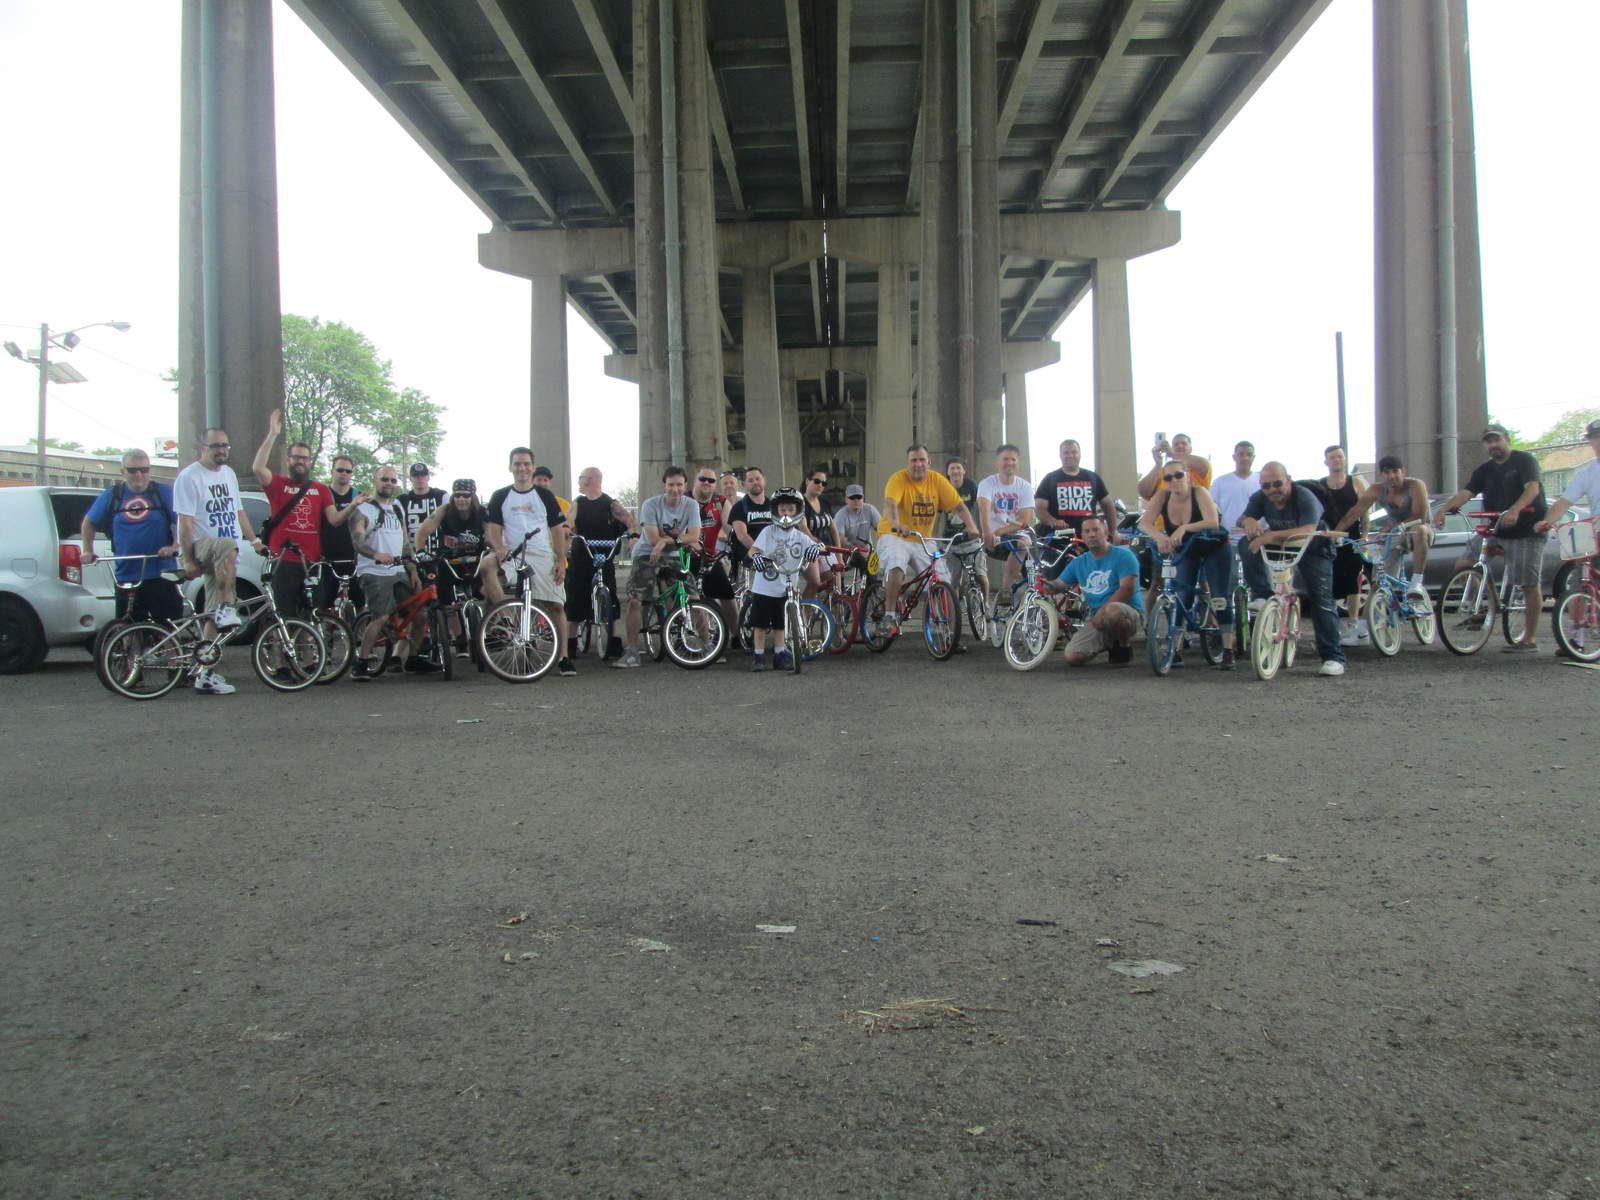 https://s3.amazonaws.com/uploads.bmxmuseum.com/user-images/27173/2017-7th-annual-sprting-ride-03559e92bf732.jpg